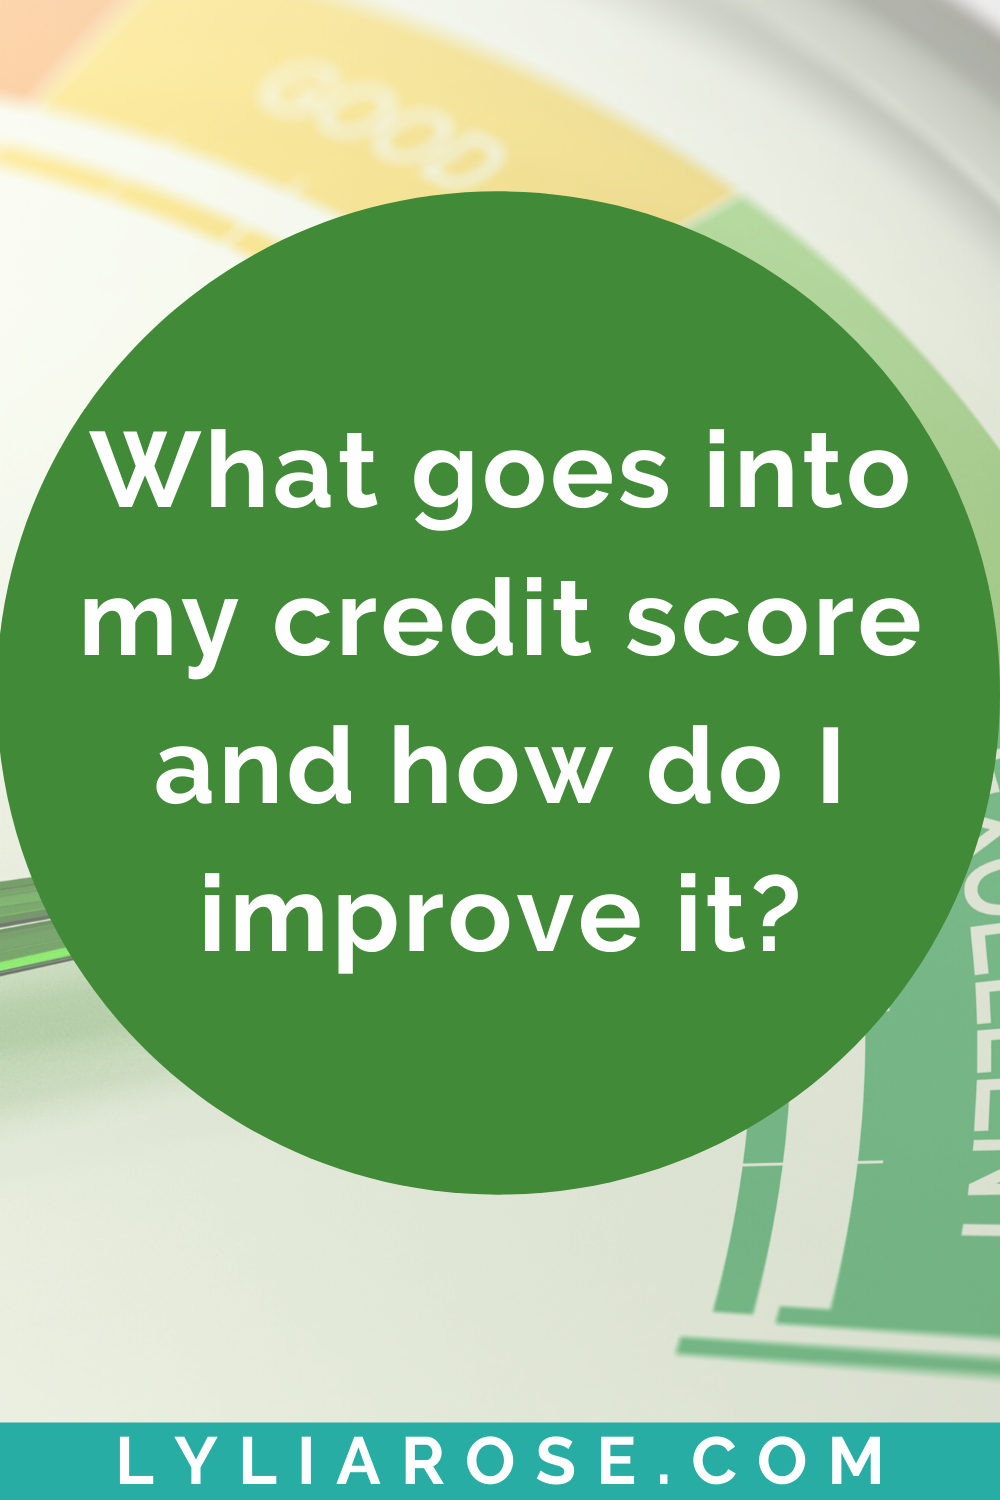 What goes into my credit score and how do I improve it?